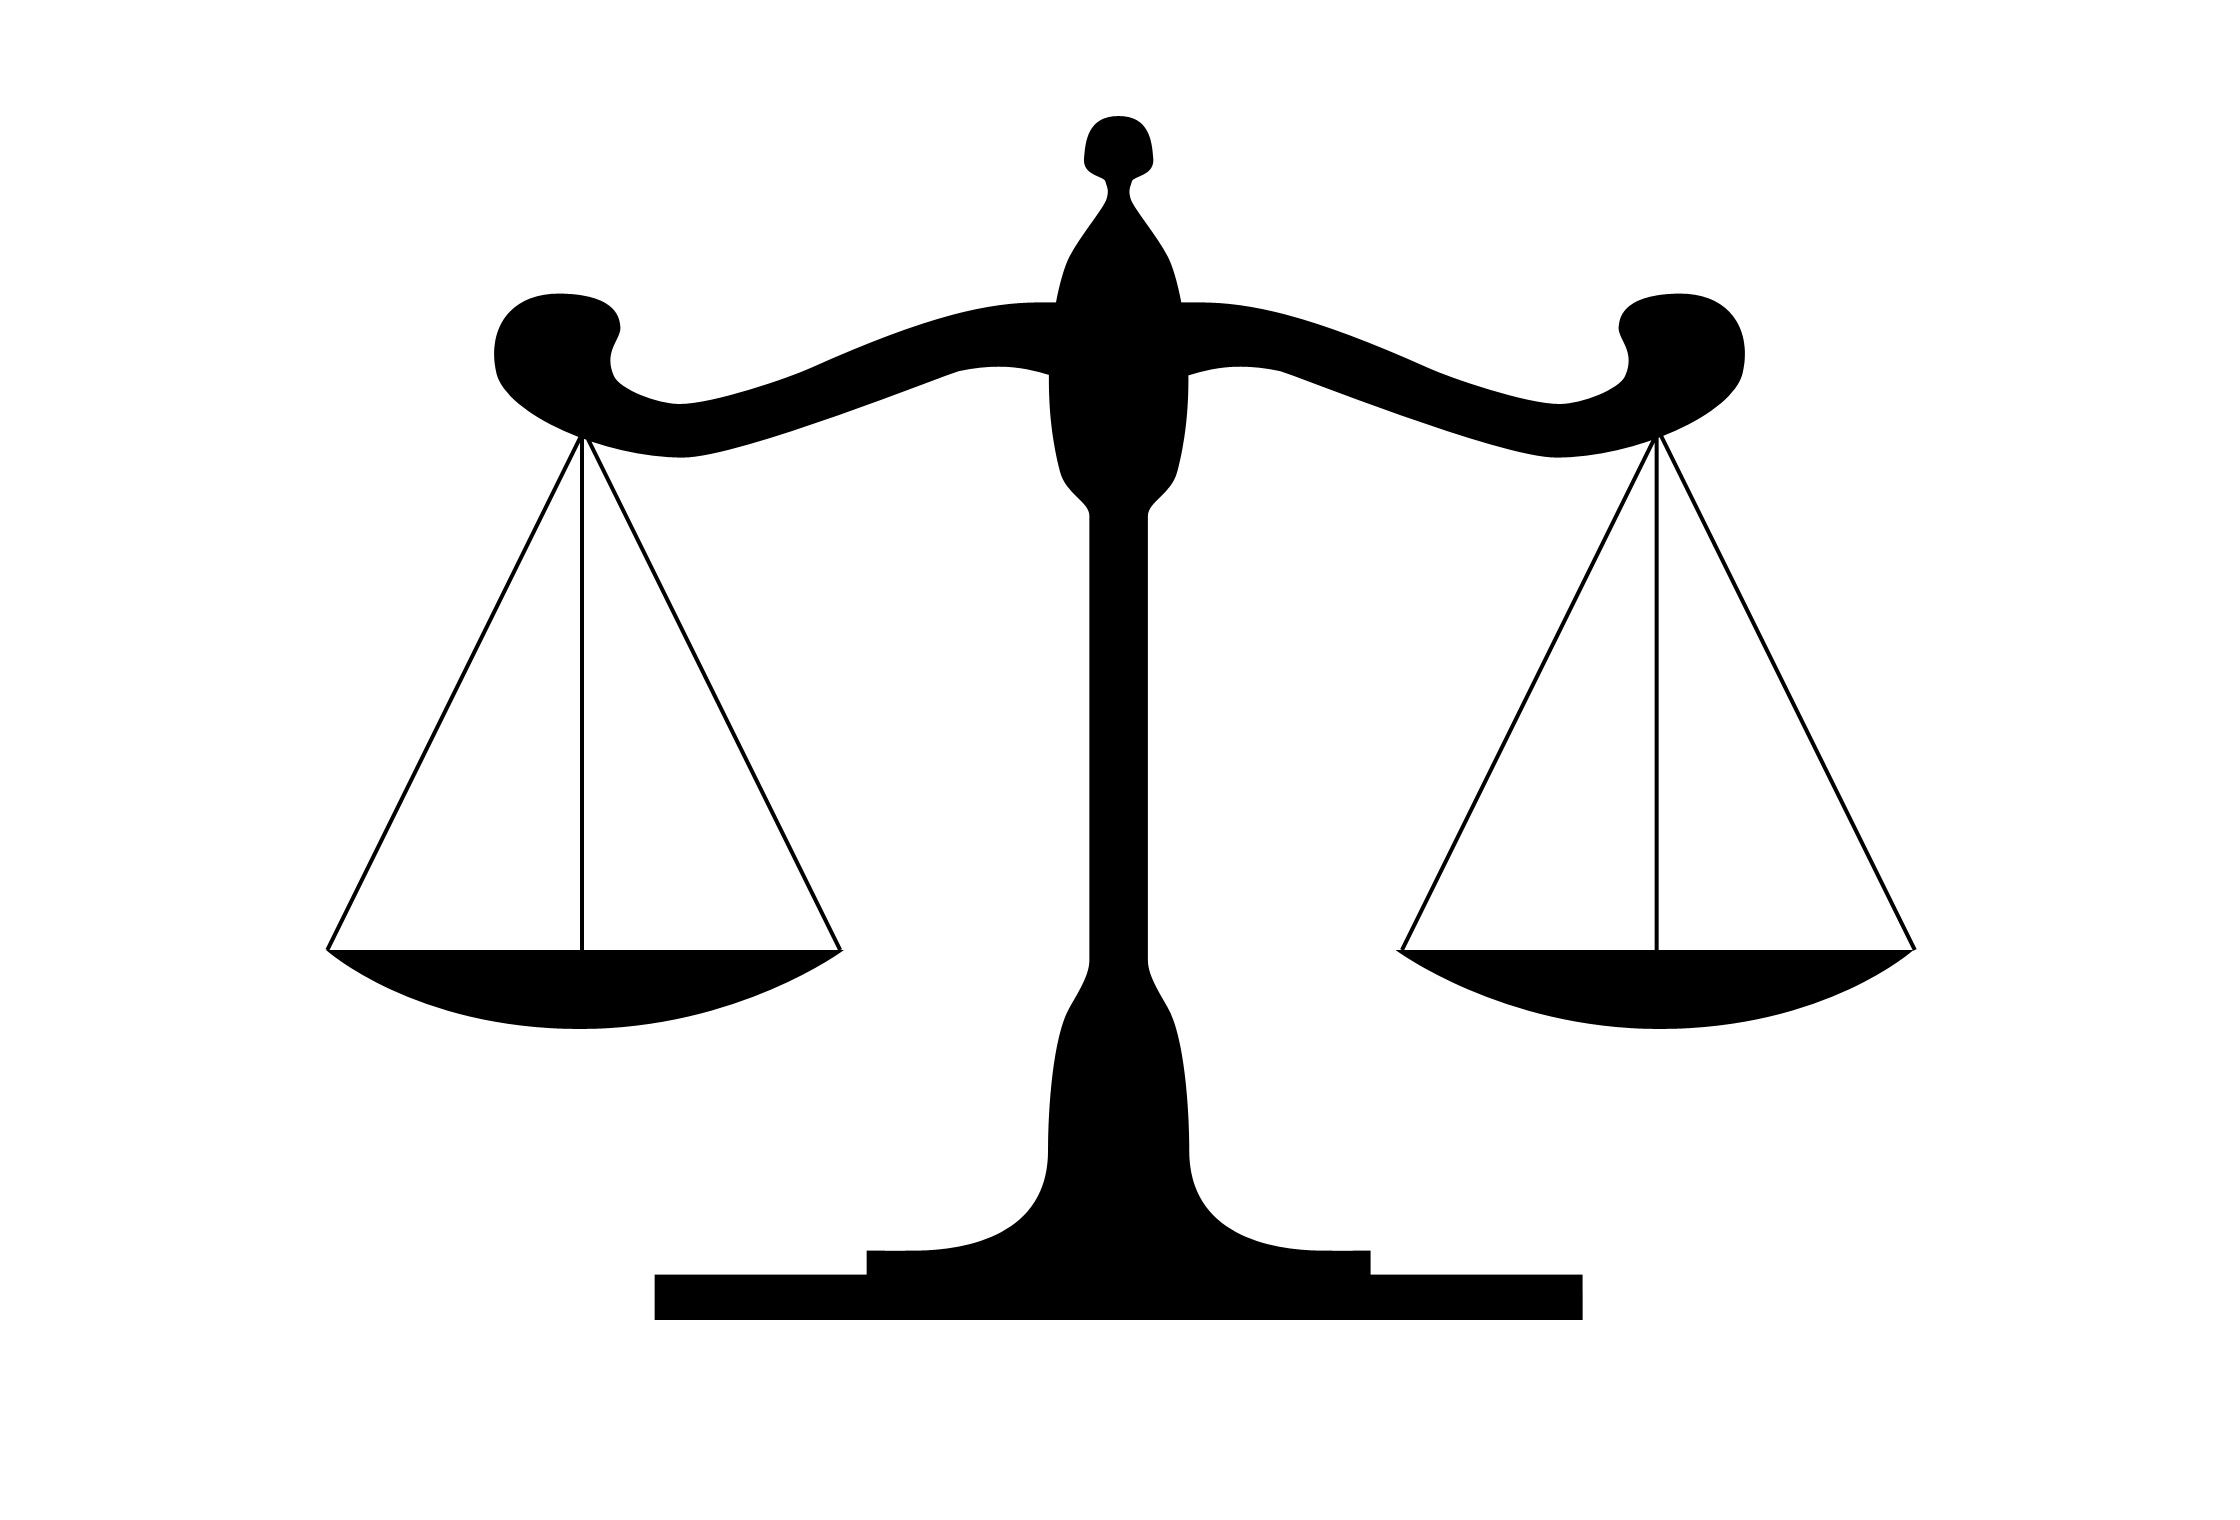 Staff attorney metrowest services. Justice clipart legal aid